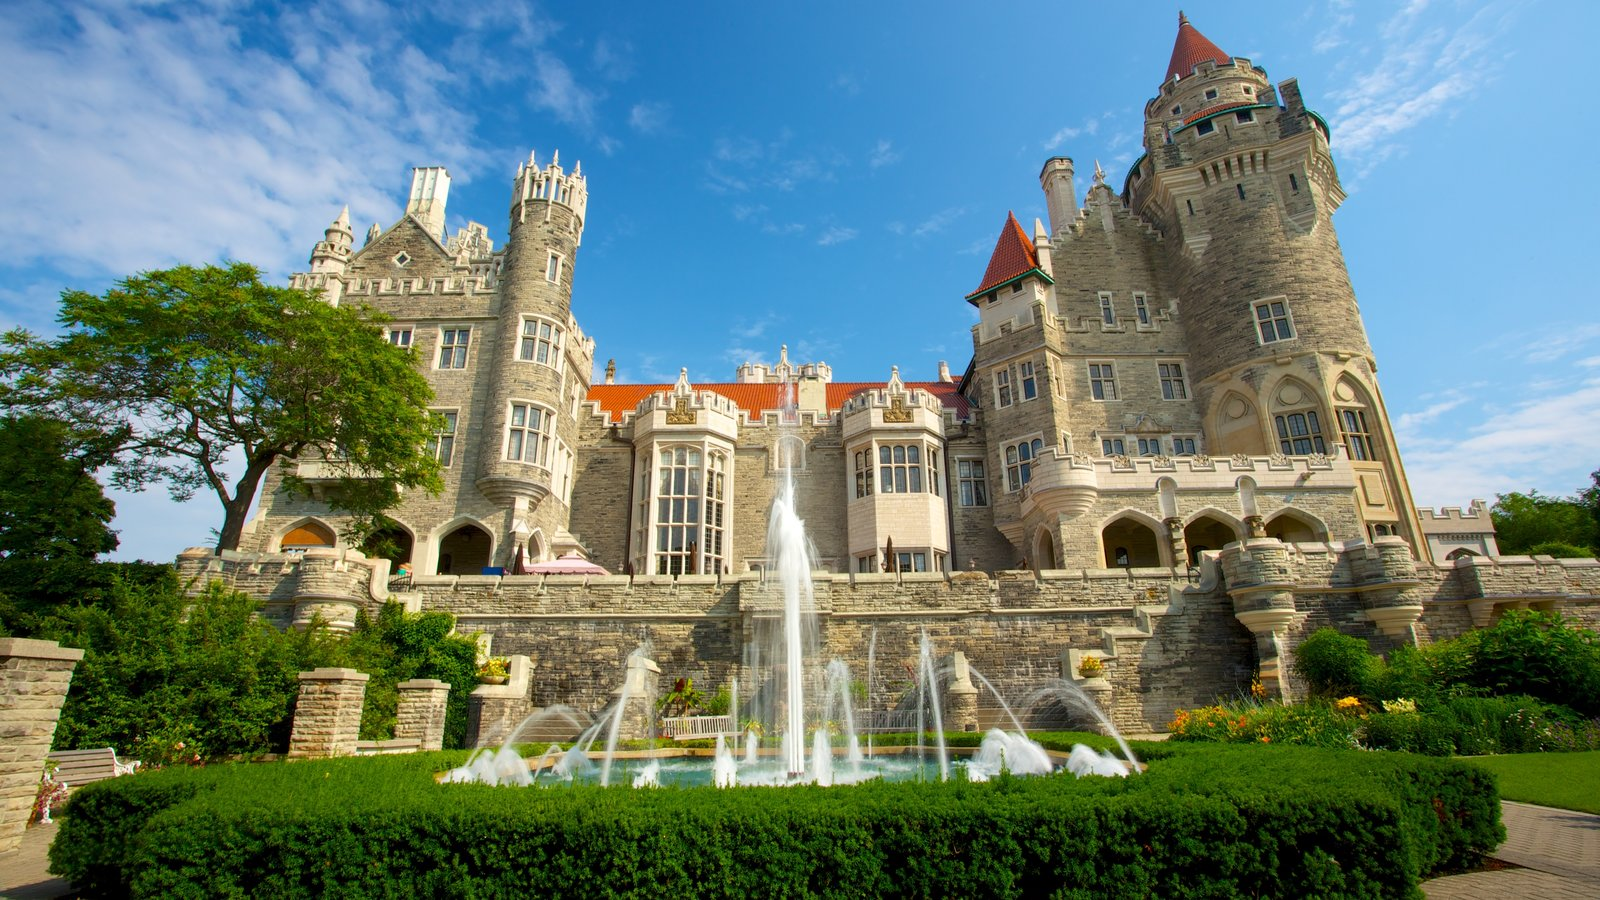 Ontario showing heritage architecture, a fountain and chateau or palace